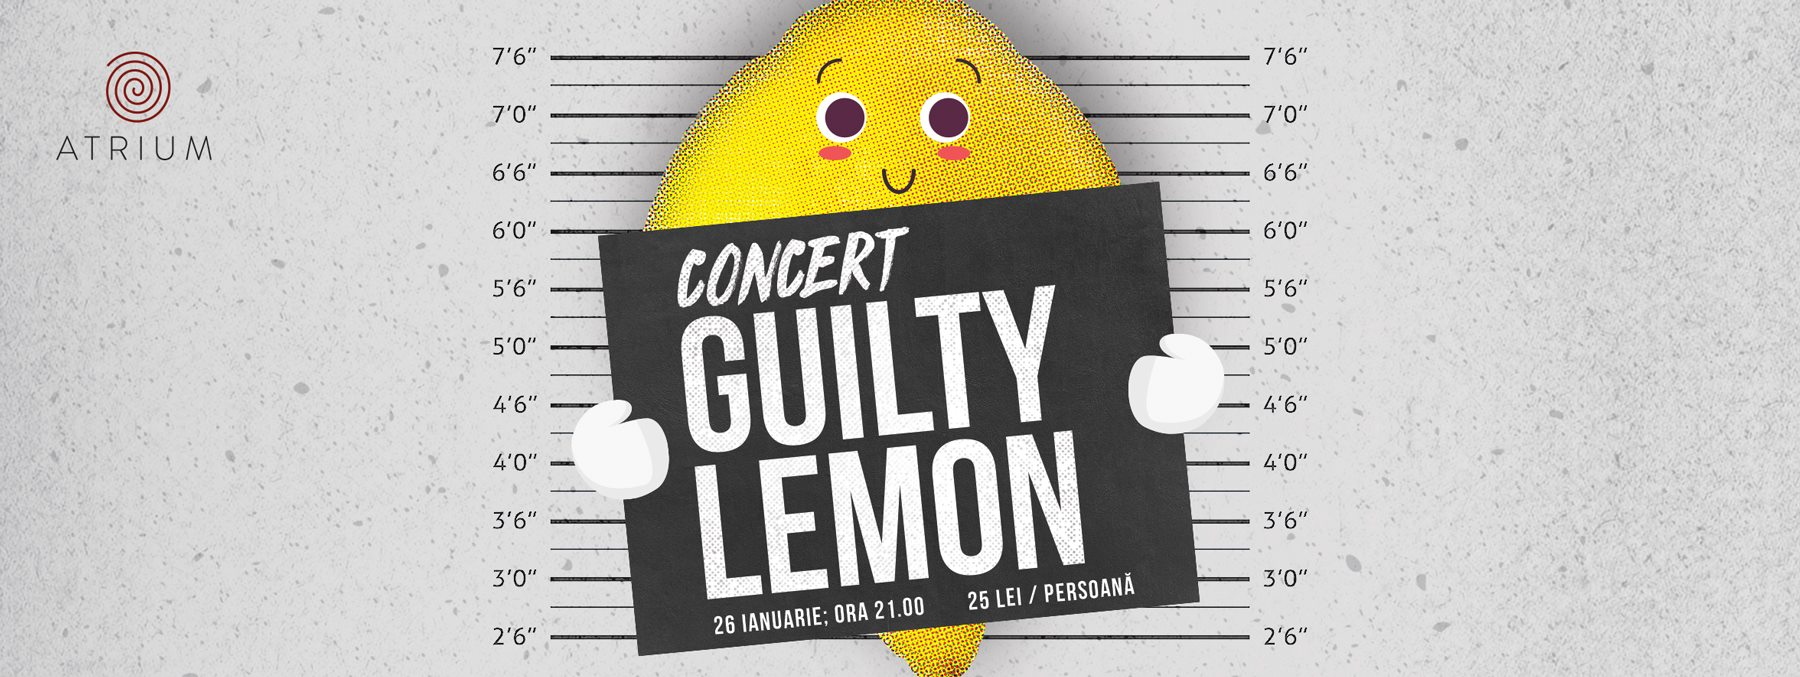 Concert: Guilty Lemon